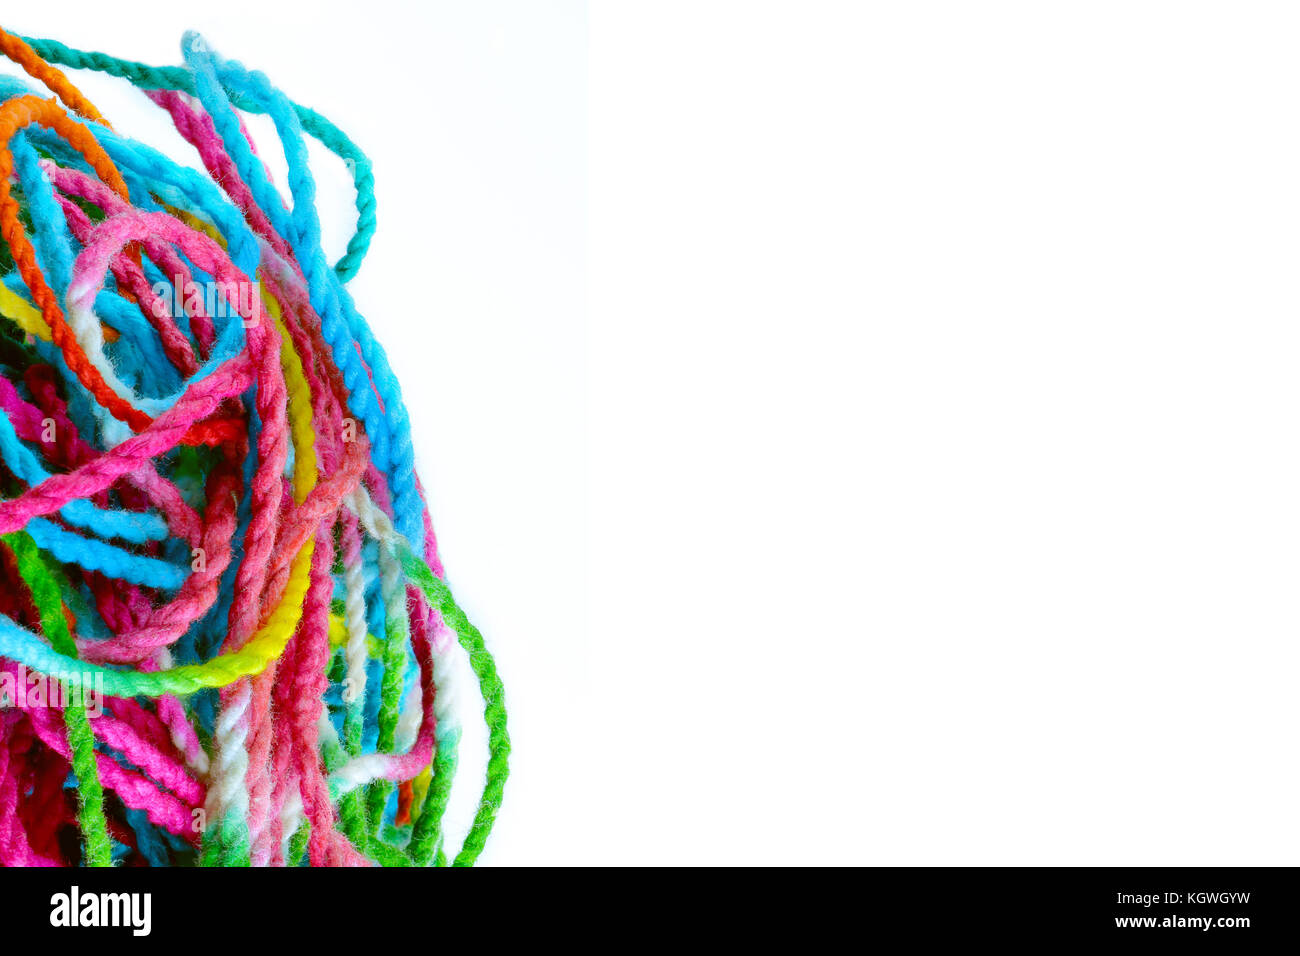 tangled yarn, tangled colorful sewing threads on white background with copy space. - Stock Image